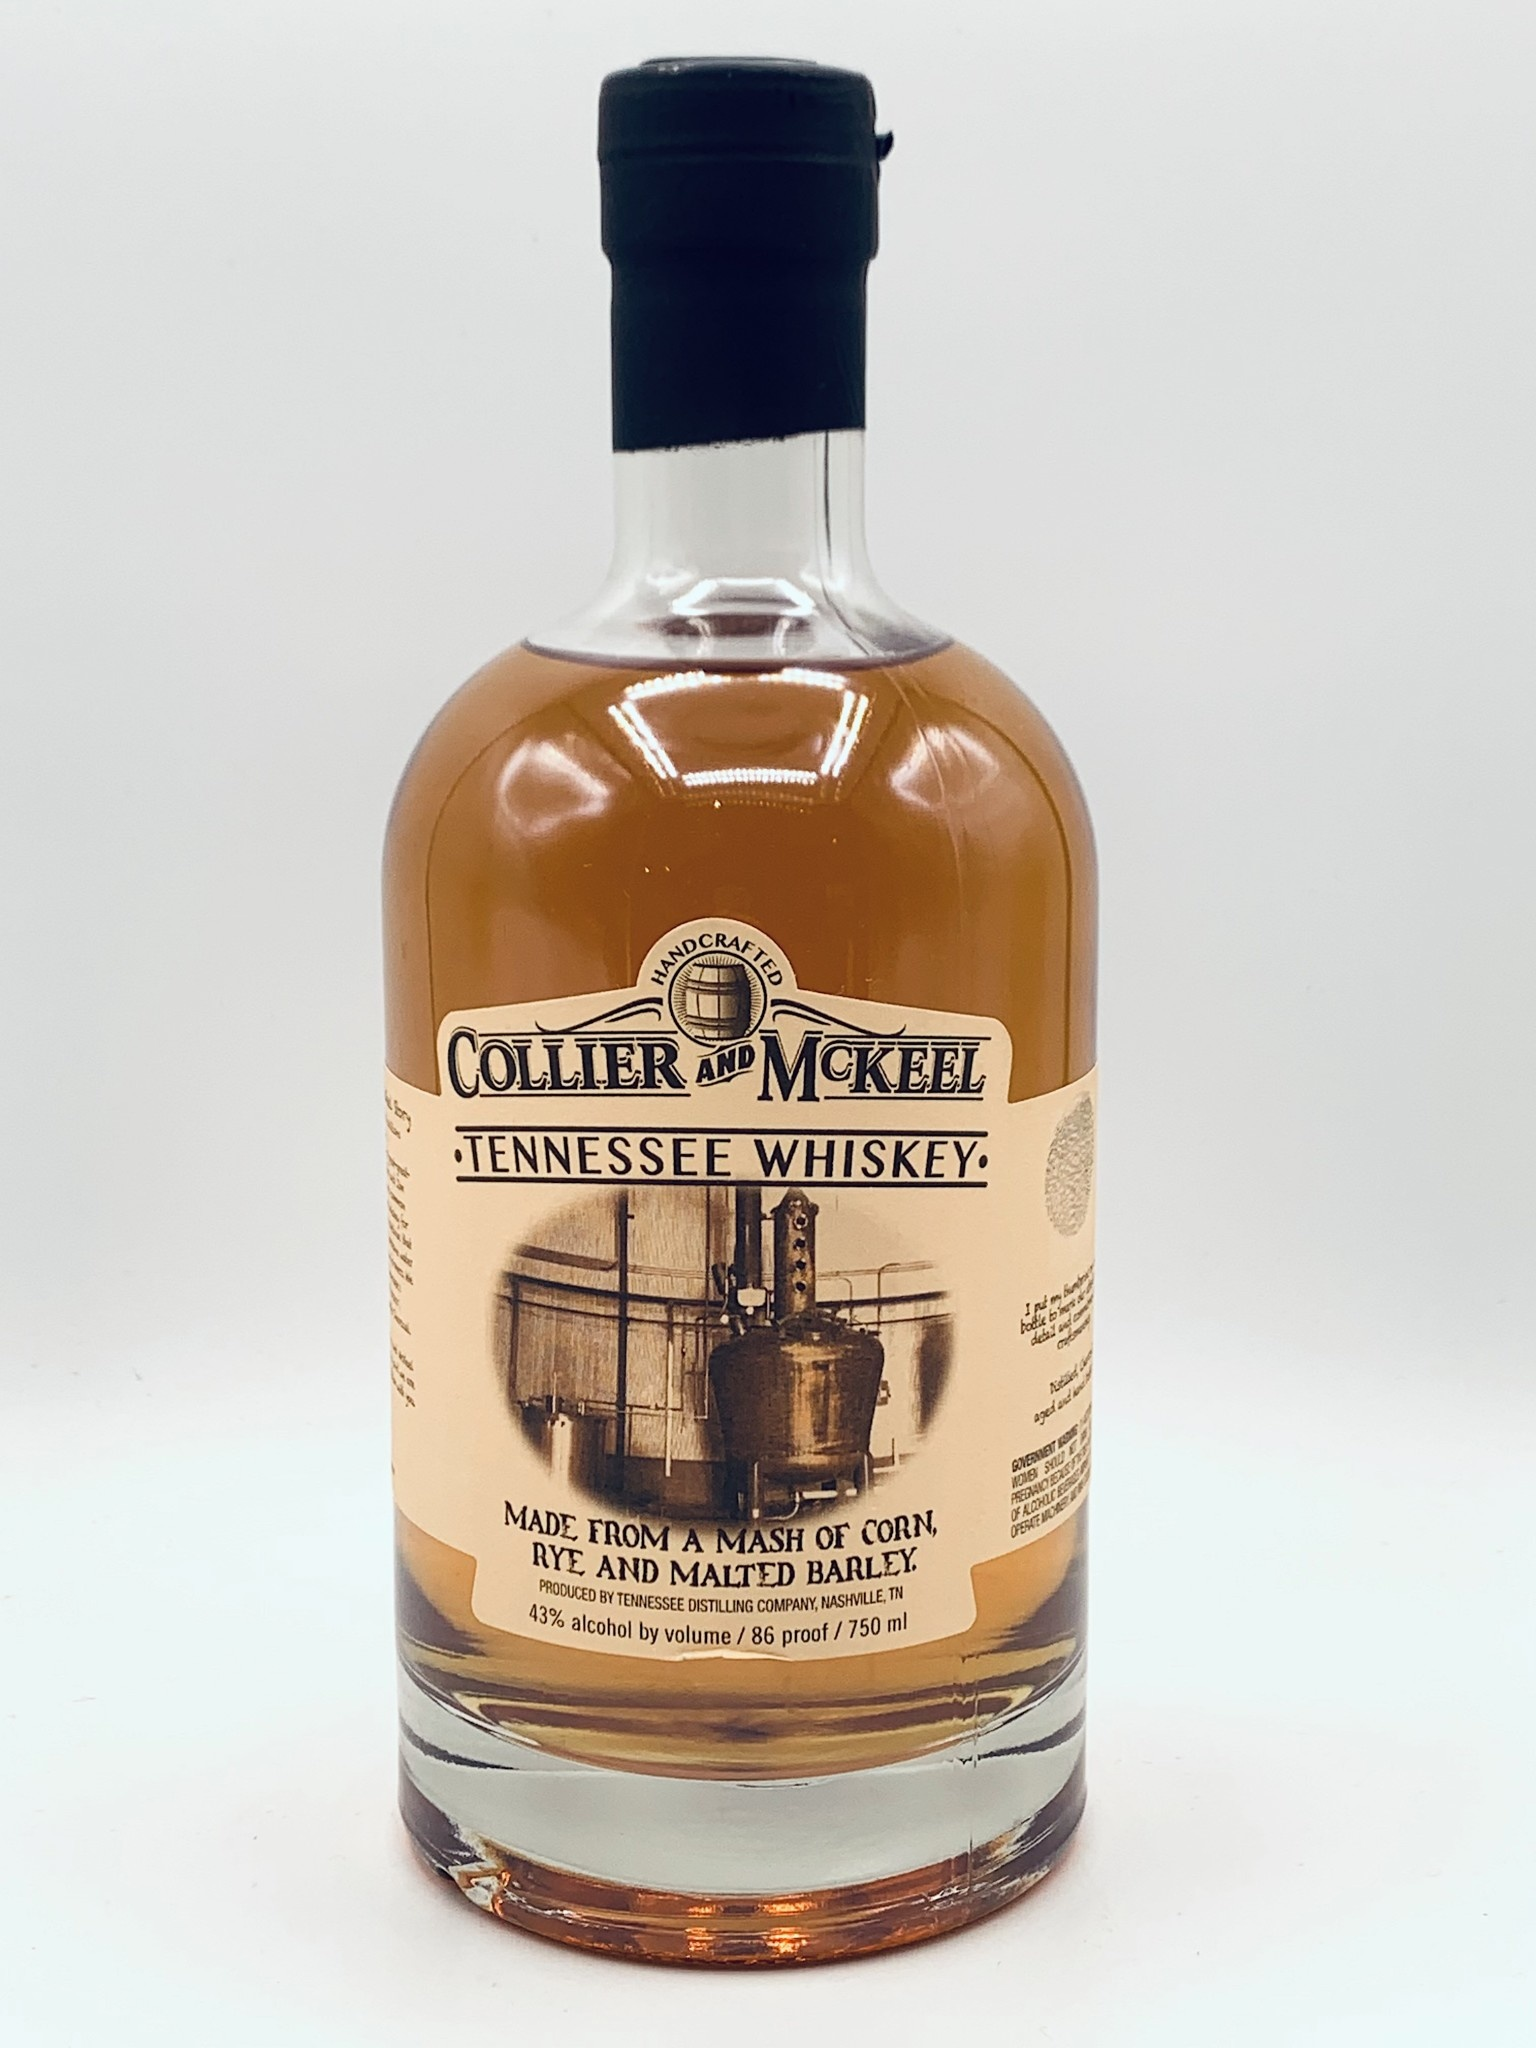 Collier & Mckeel Tennessee Whiskey 750ml (86 Proof)